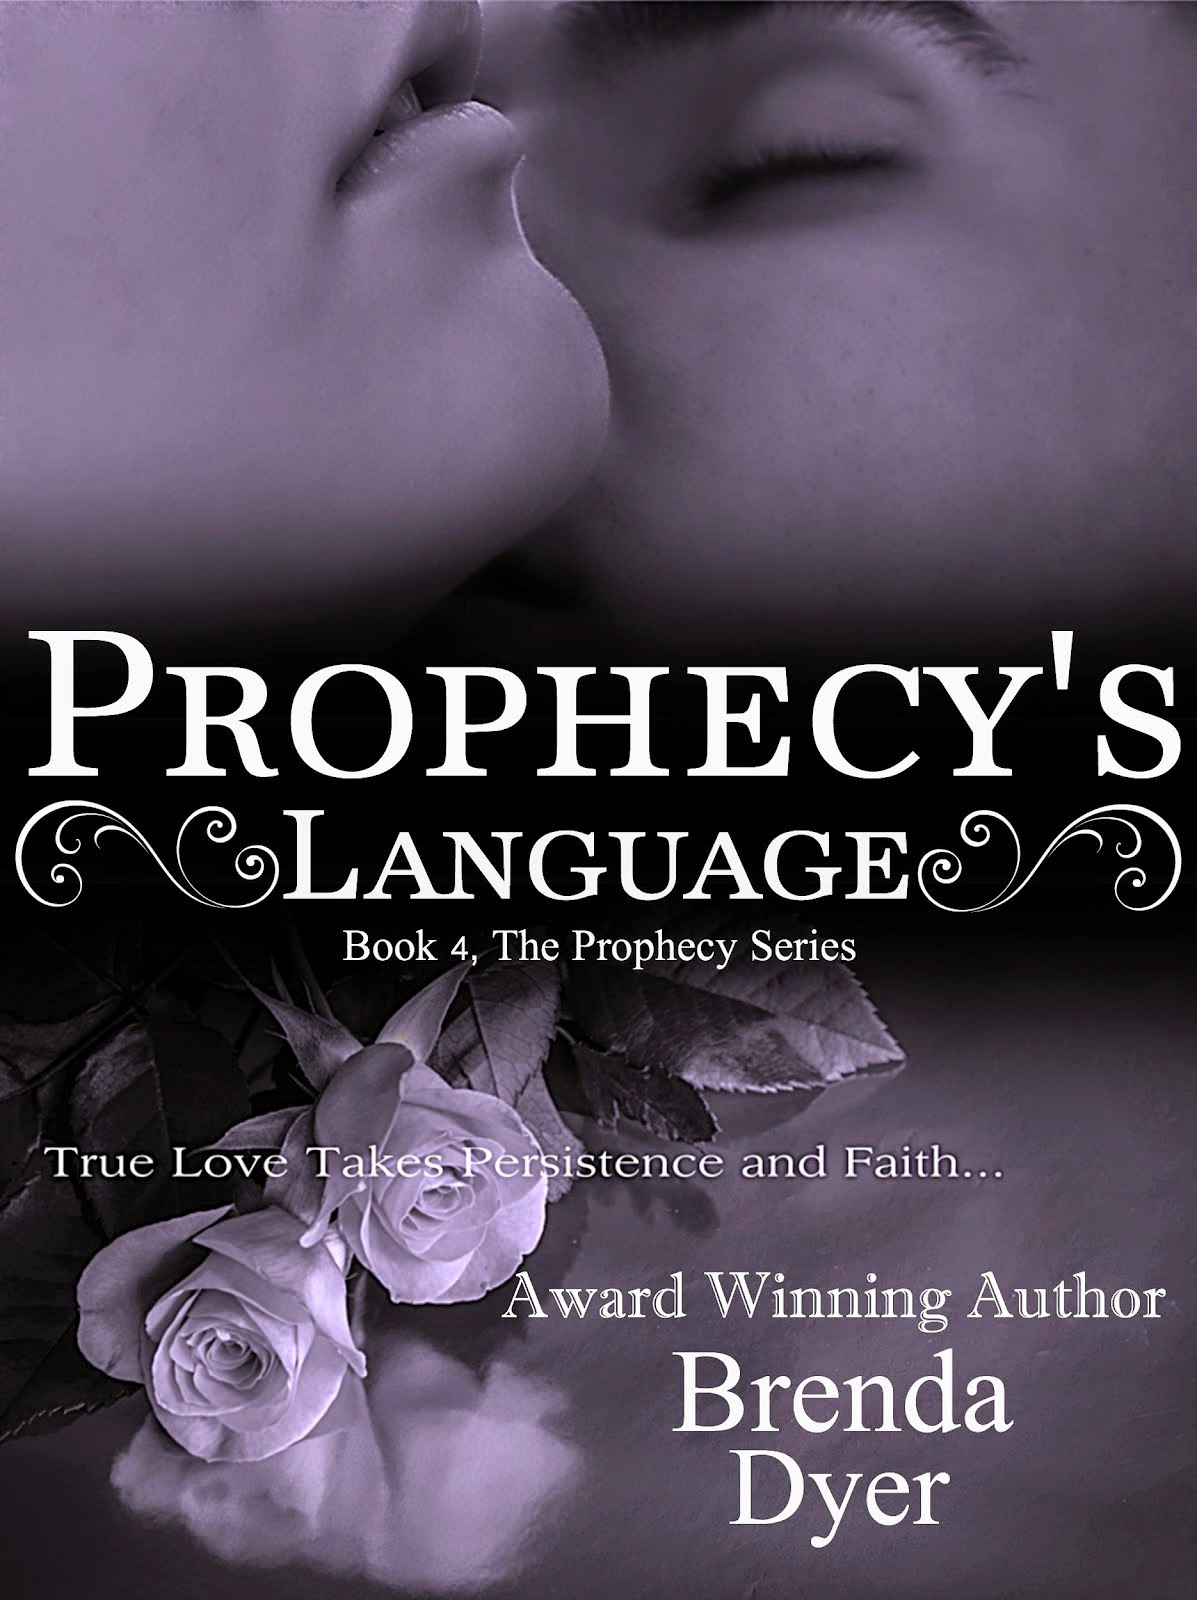 Prophecy's Language, Book #4 in the Prophecy Series